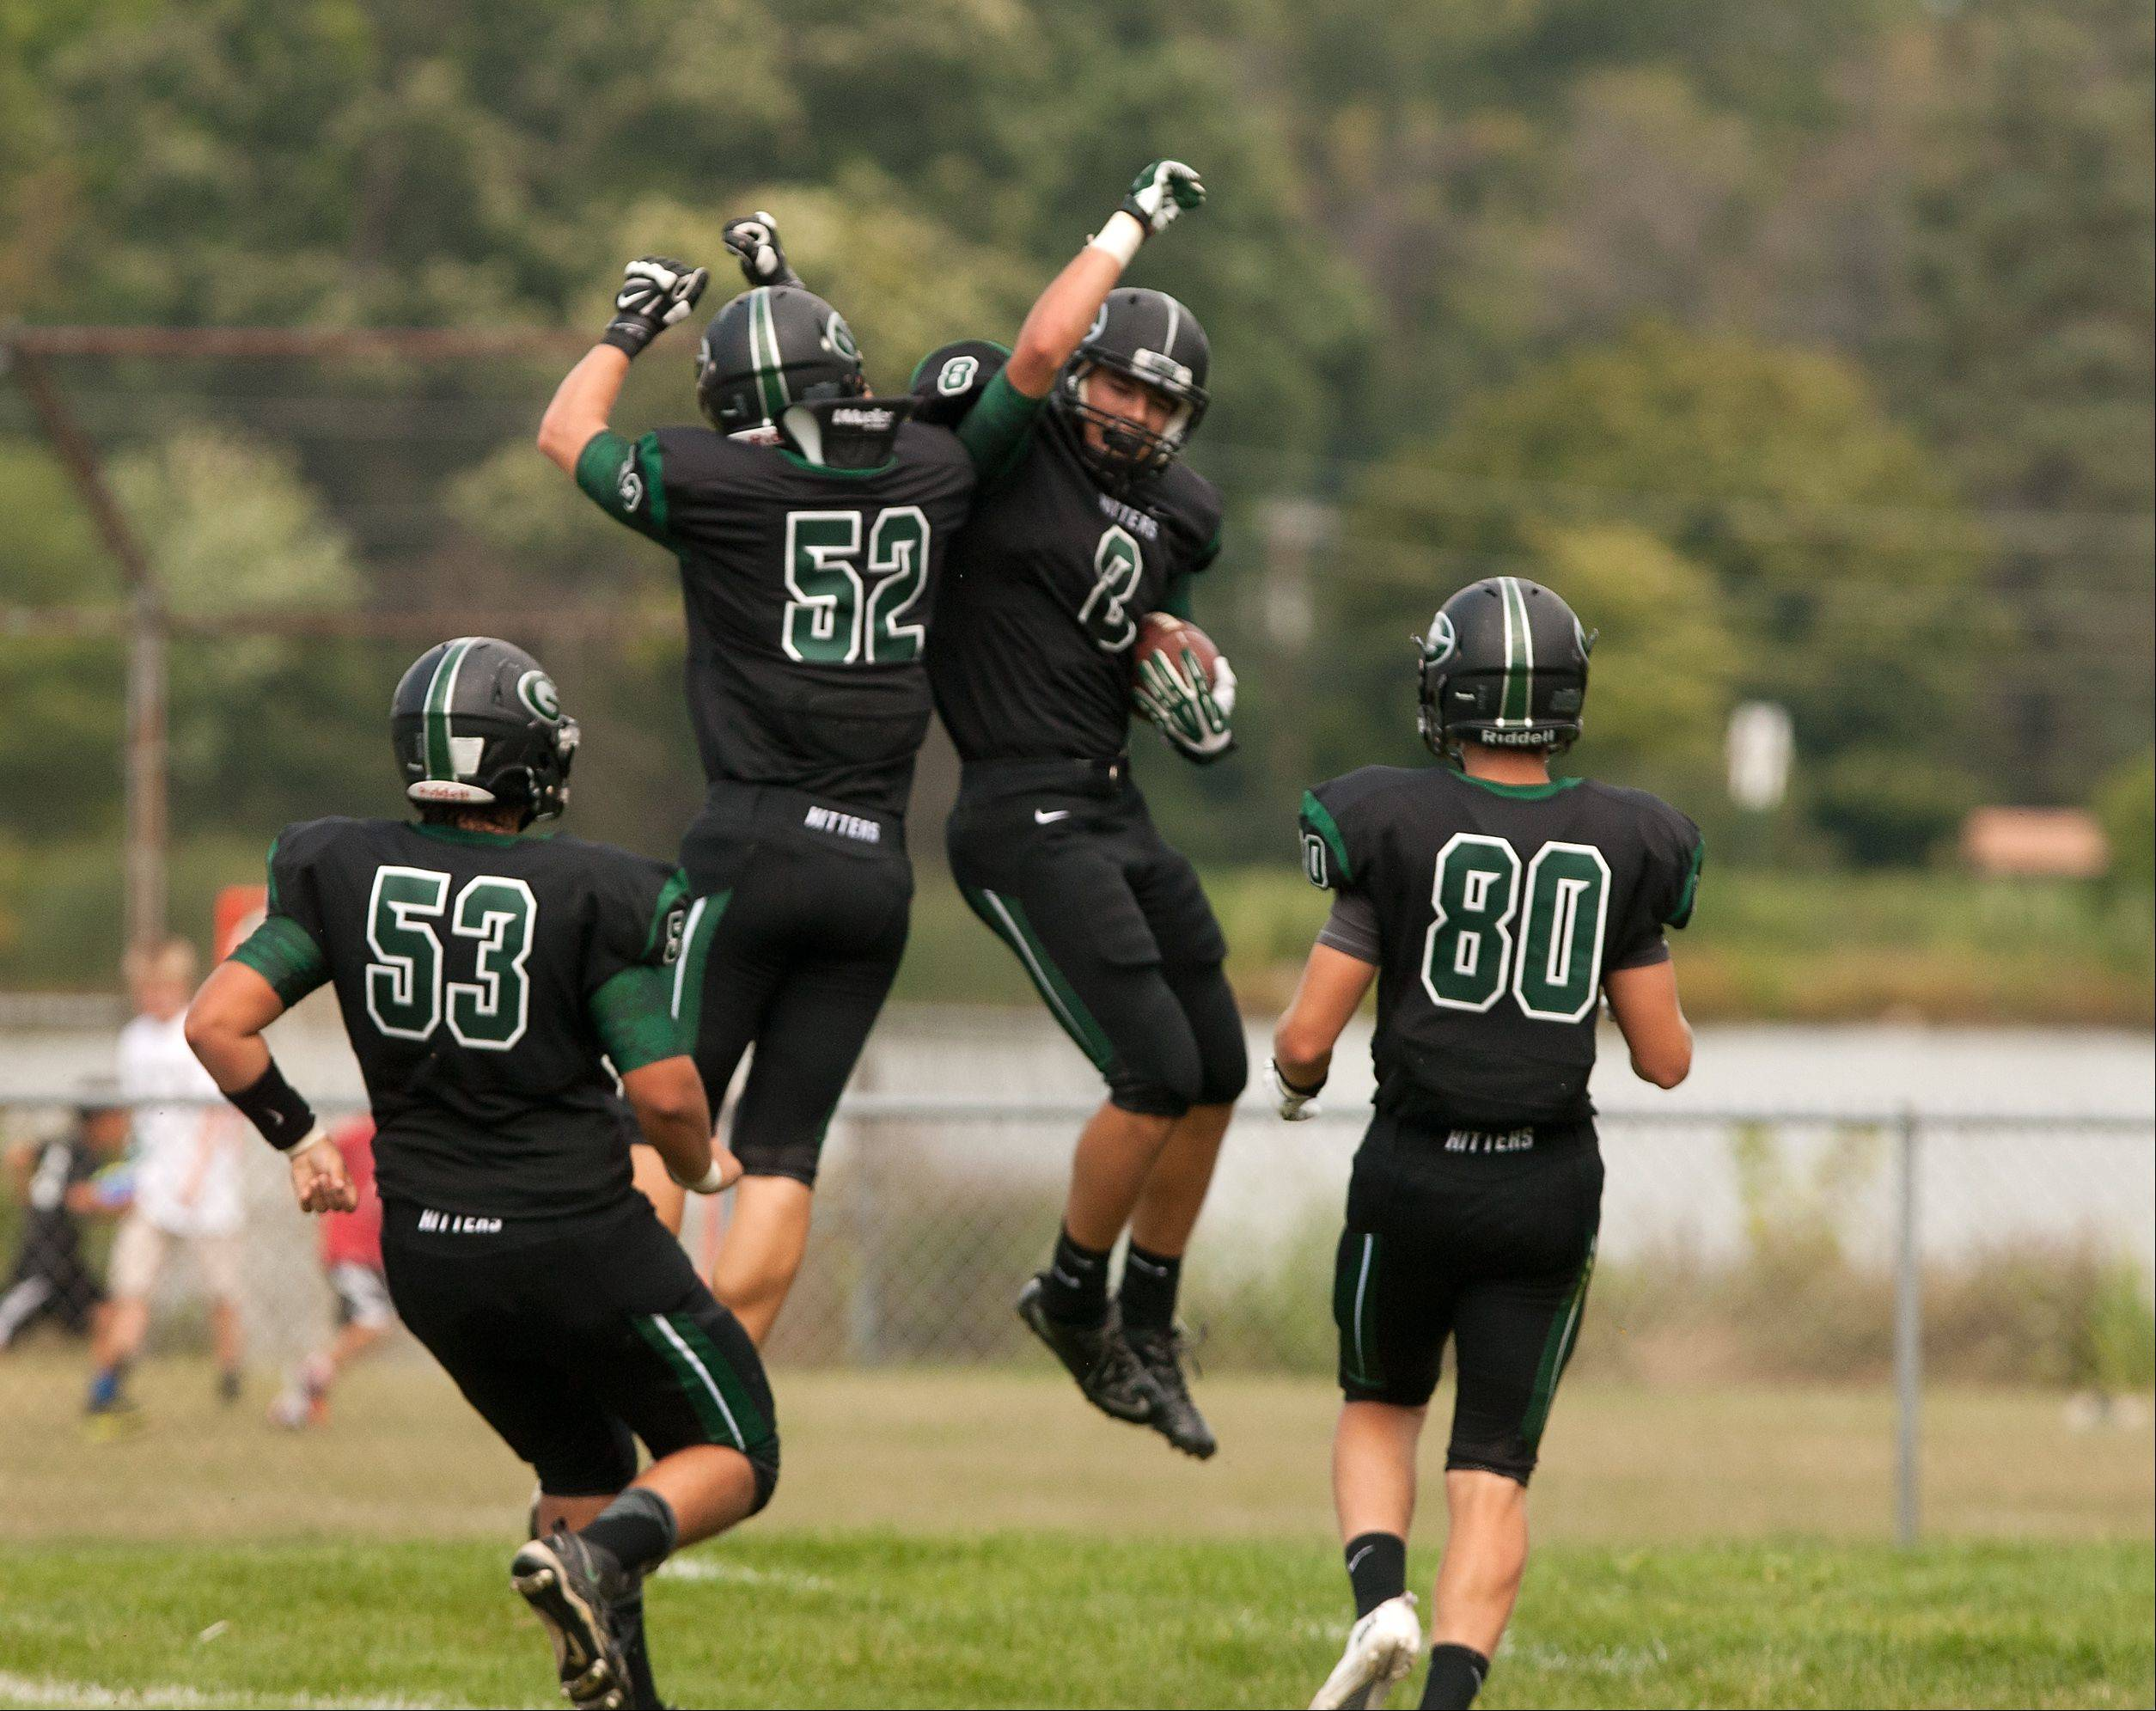 Glenbard West's Hayden Carlson celebrates after scoring a first half touchdown against Morton.